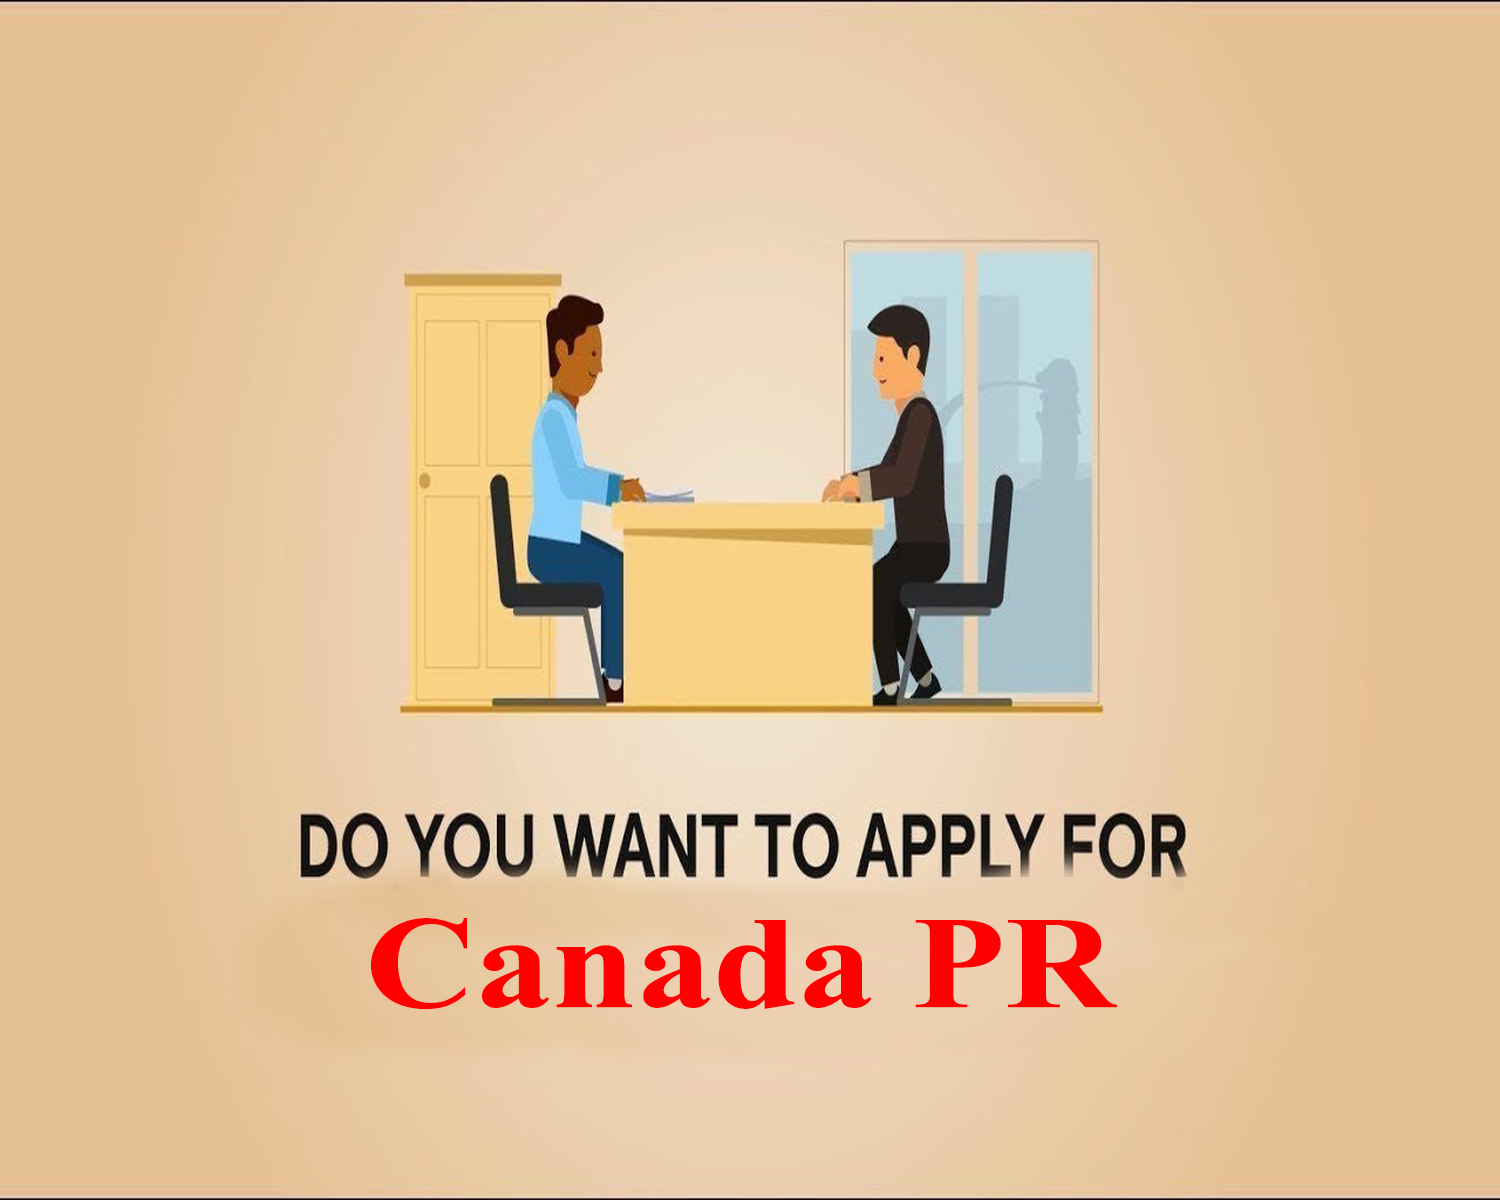 Canadian permanent residence